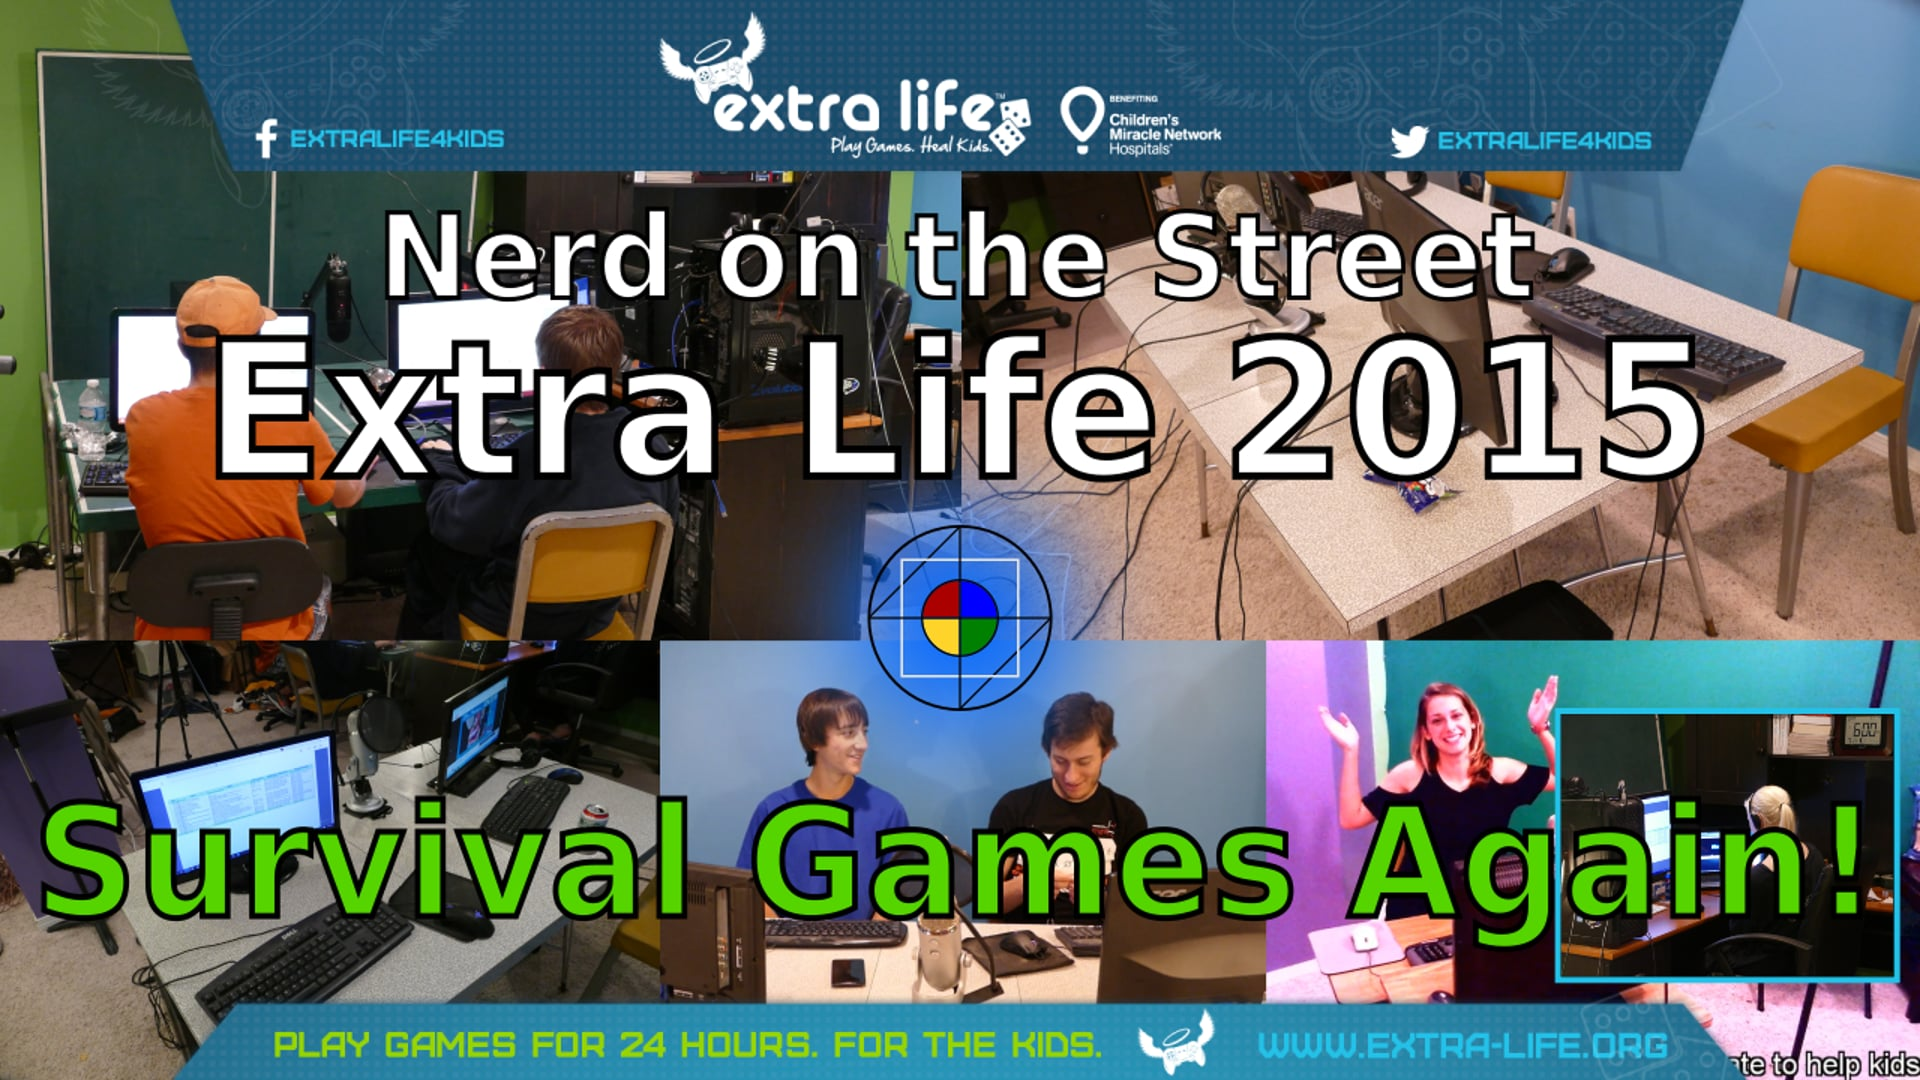 Survival Games, Part 2 - Extra Life 2015